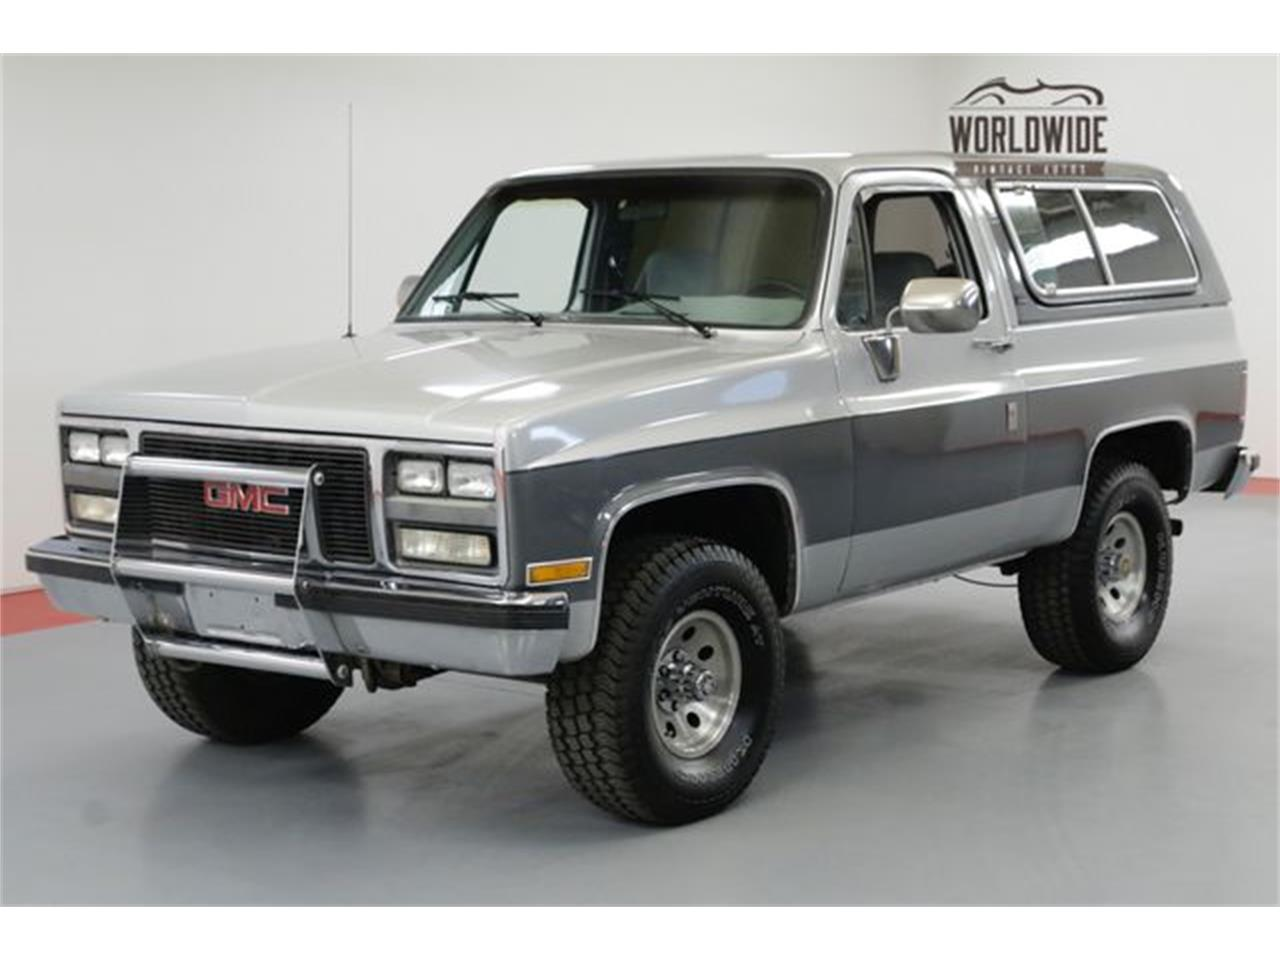 1990 Gmc Jimmy For Sale Classiccars Com Cc 1099408